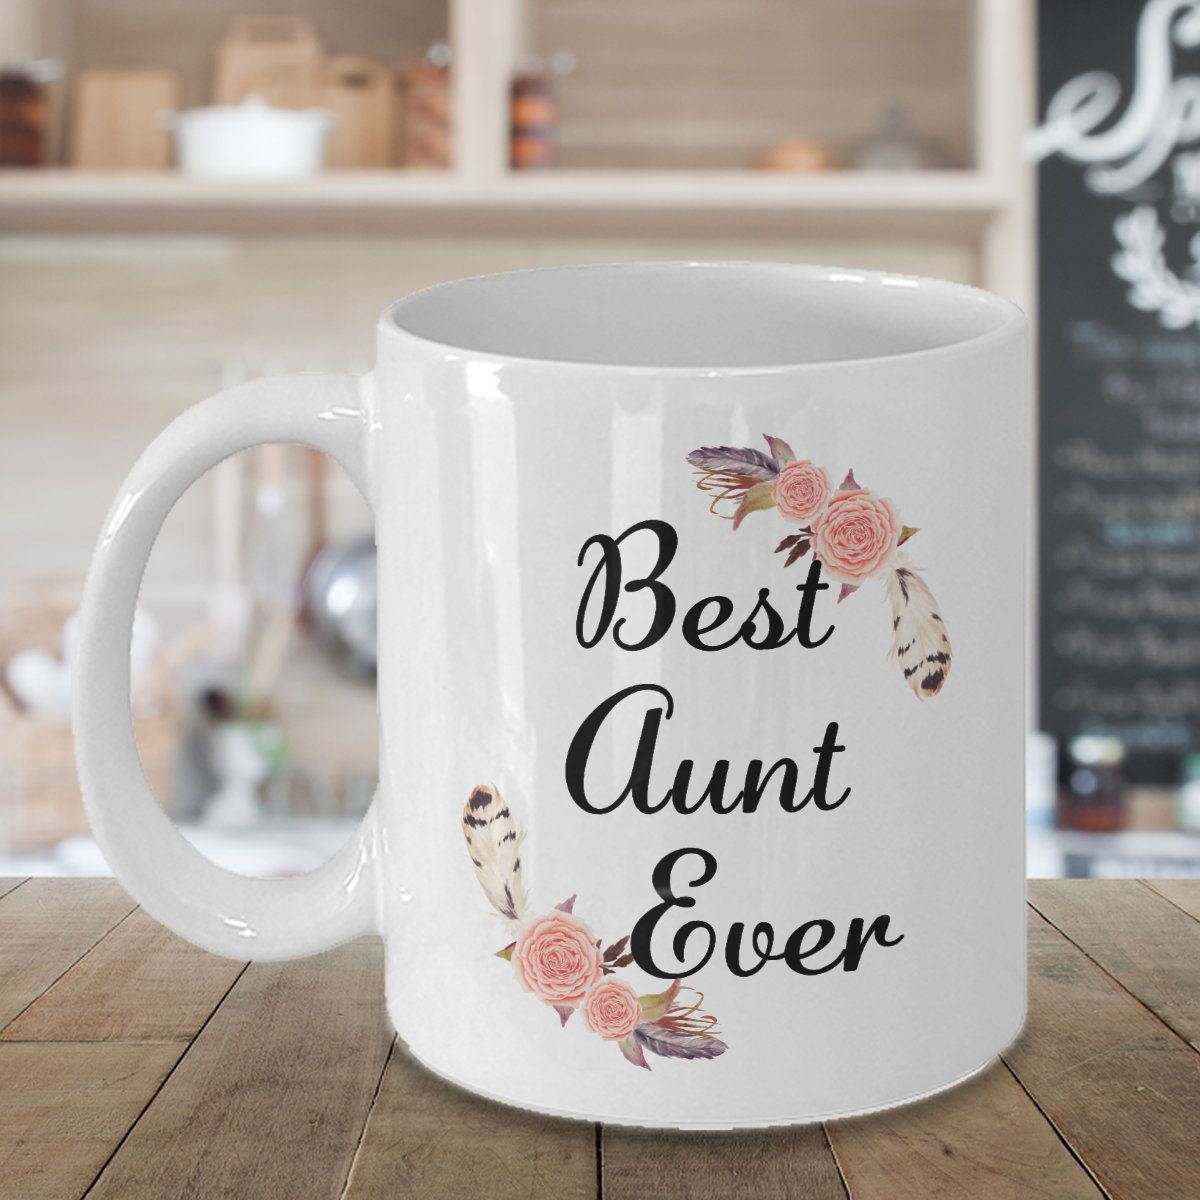 Best Auntie Ever Coffee Mug Gifts for Aunt Cup Presents